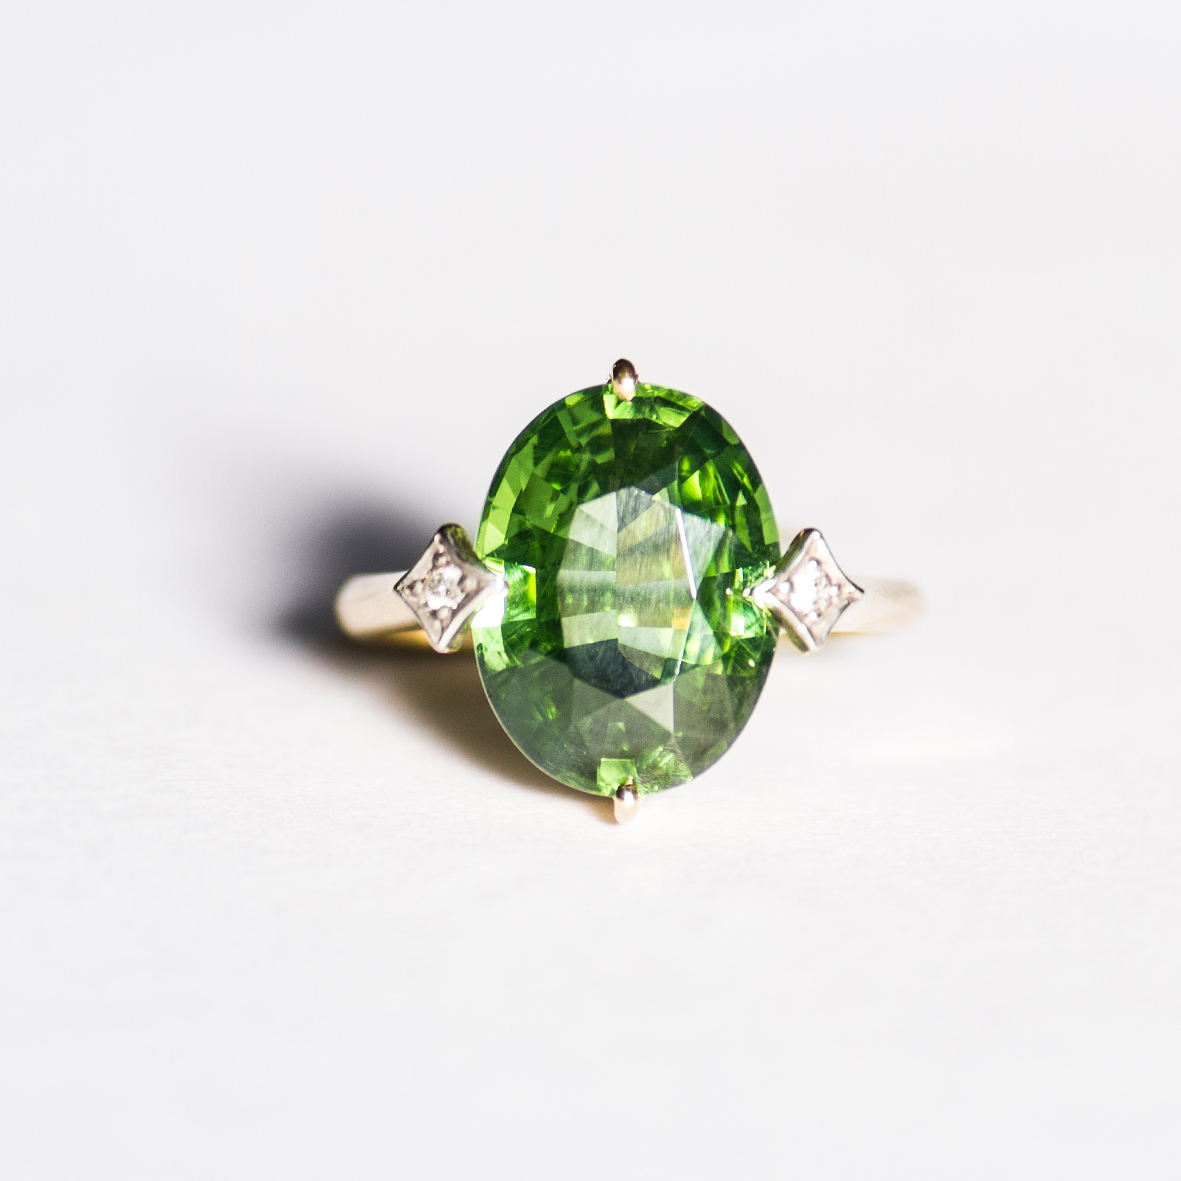 3. OONA_gems of ceylon_ficha1_green zircon copia